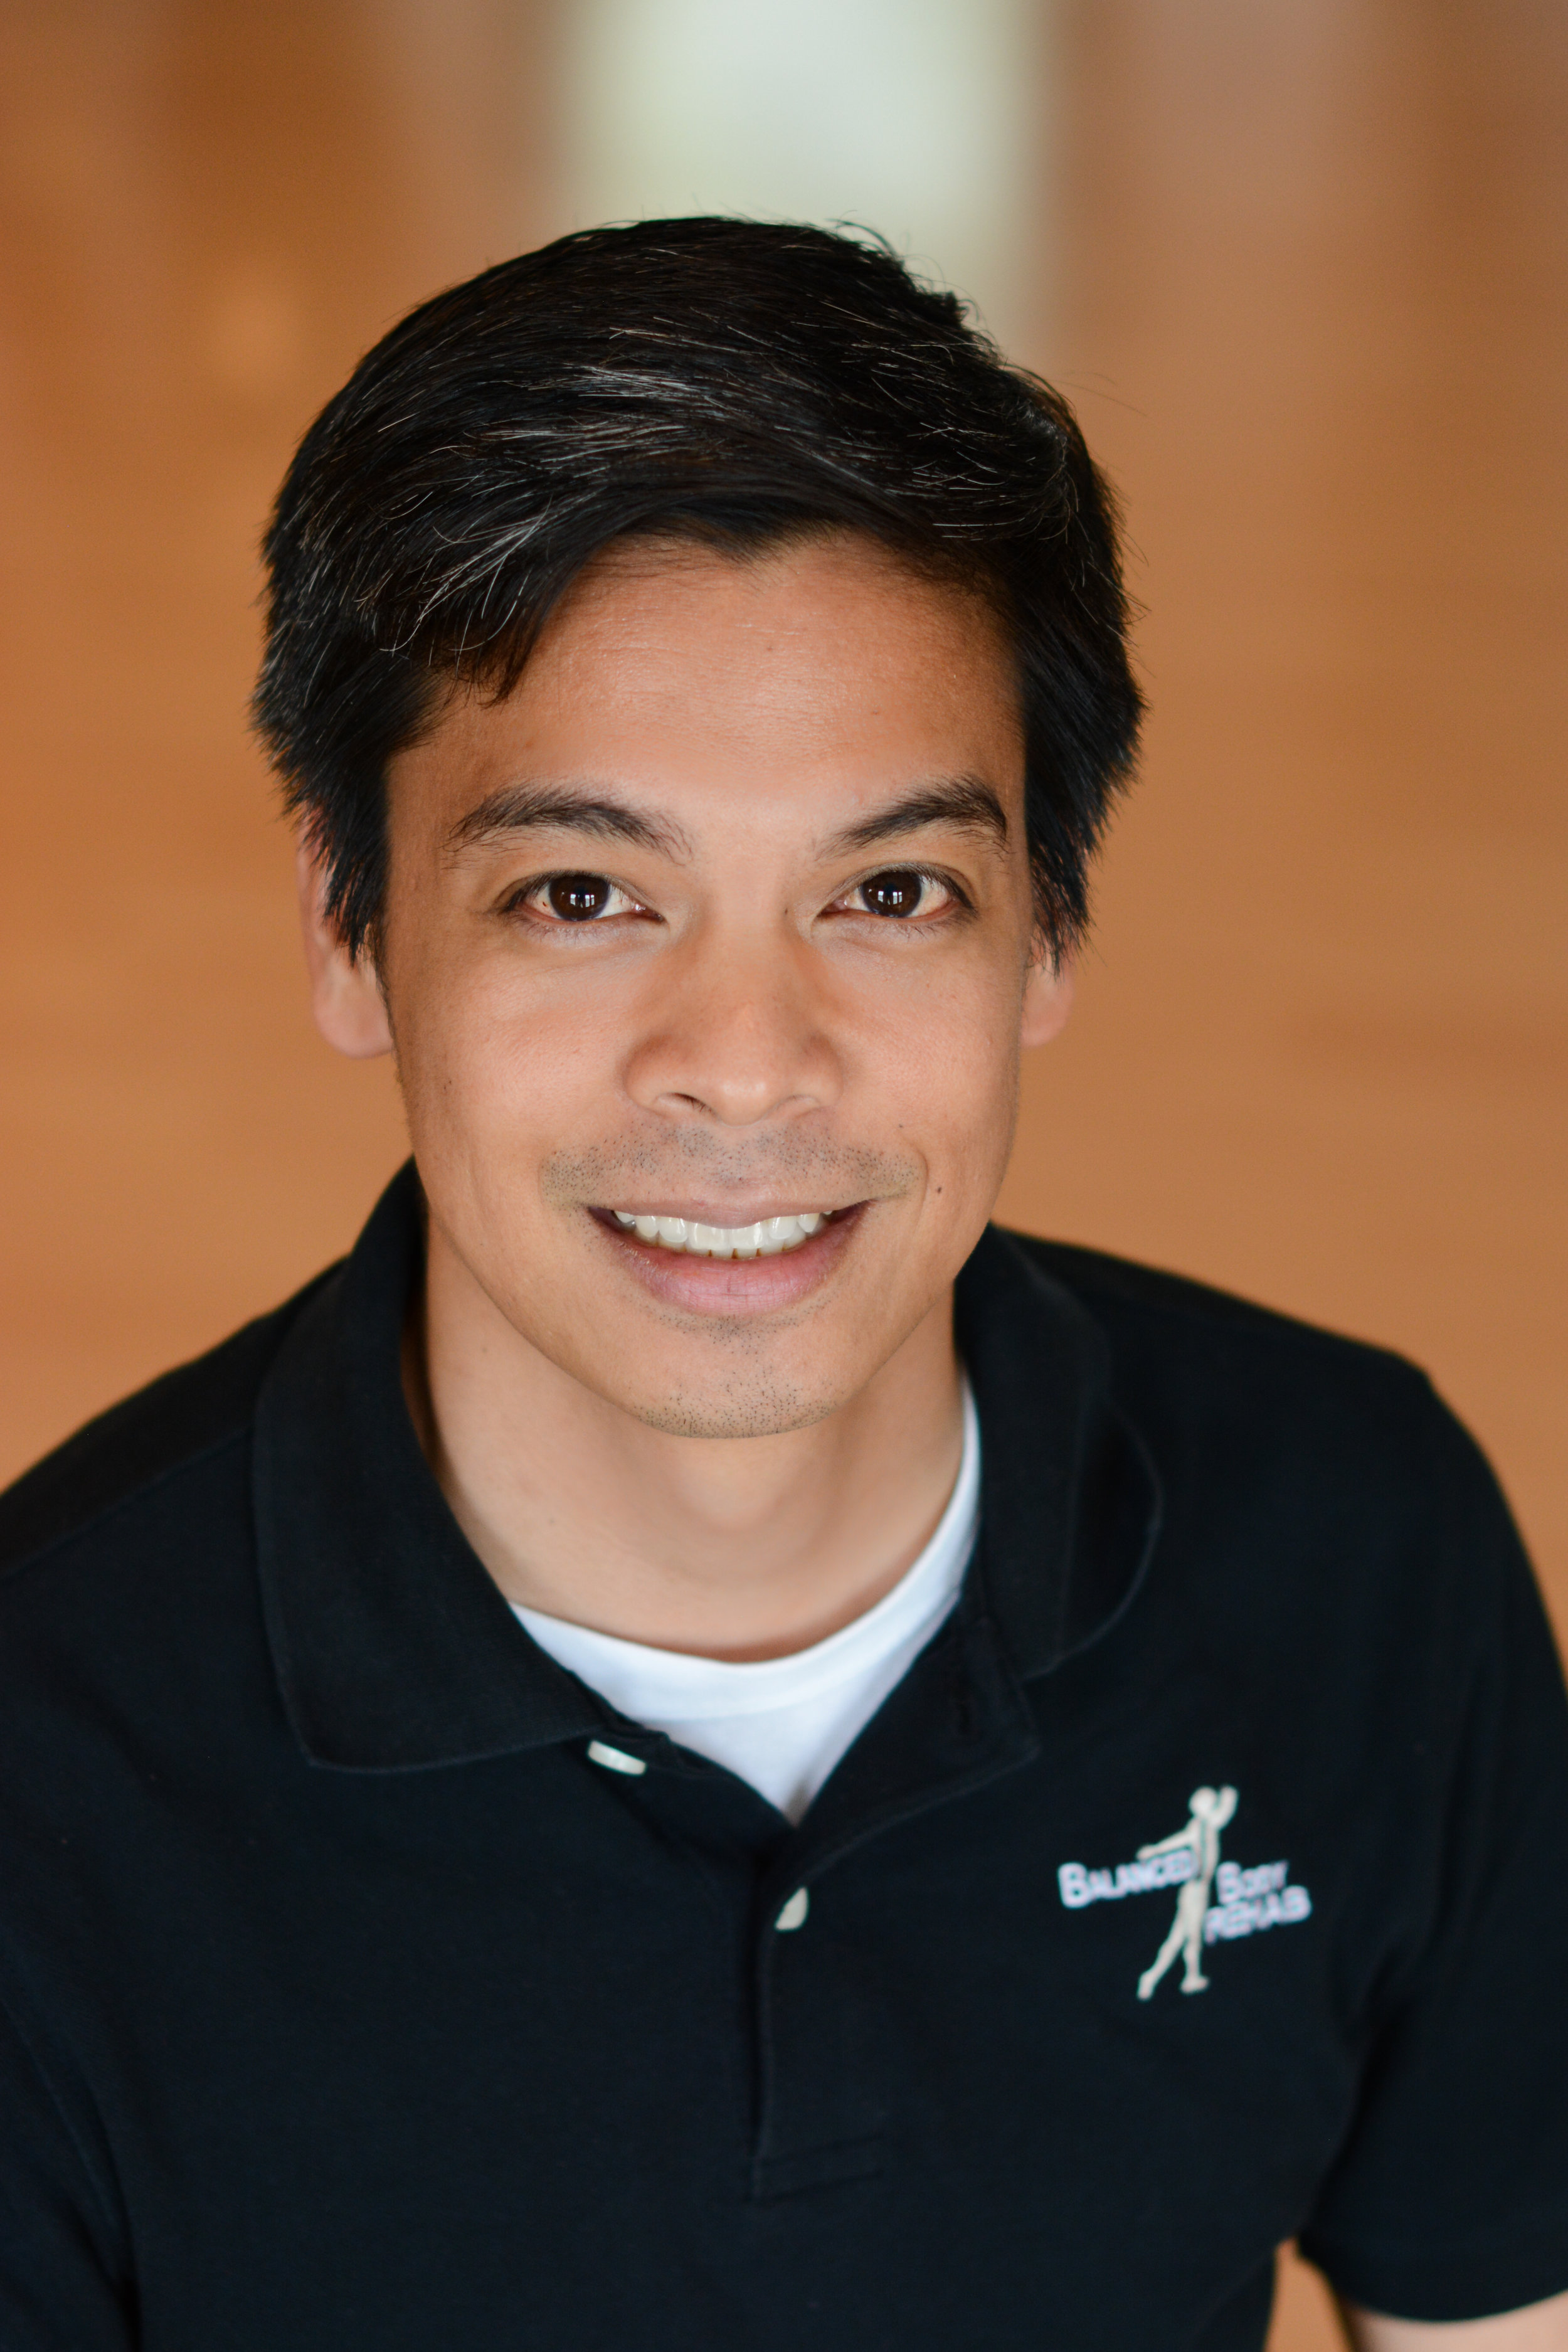 Gabe Sison, PTA                            Physical Therapist Assistant                                690 South Geyer Road                               Kirkwood, MO 63122                   Email:  gabe@balancedbodyrehab.com                              Phone: (314) 780-9759                                 Fax: (888) 898-5857